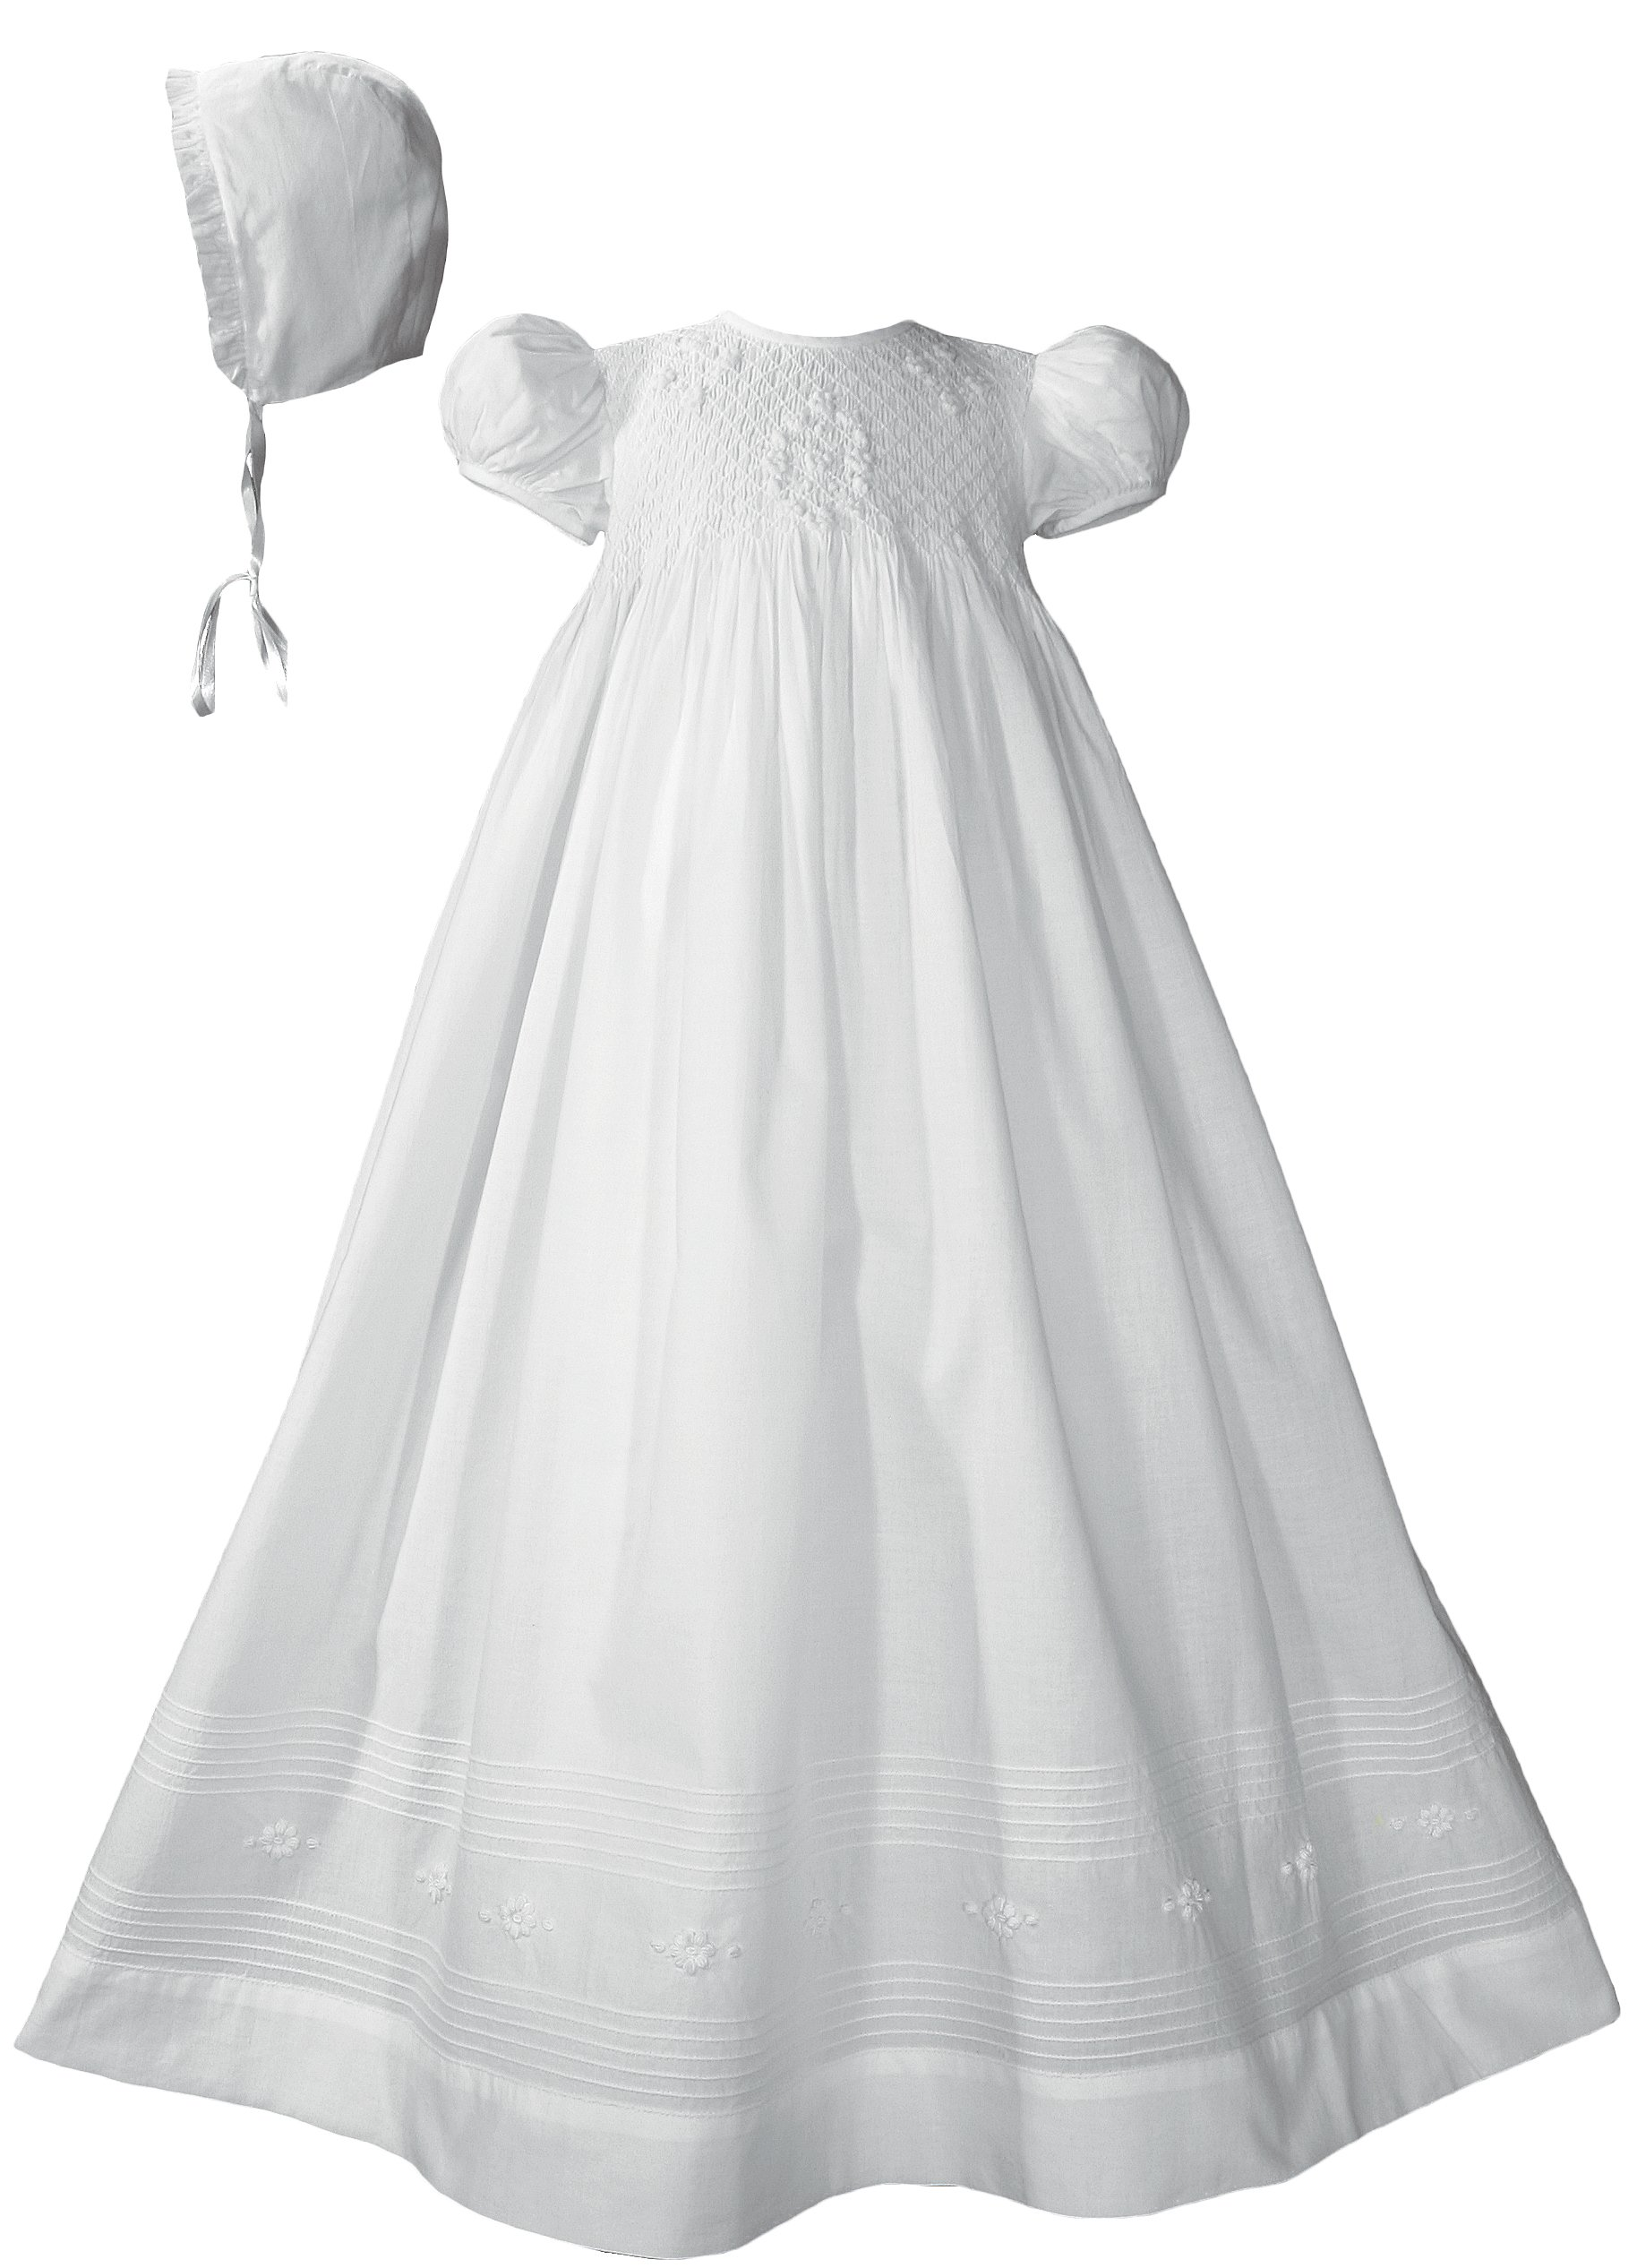 32'' Girls Cotton Hand Smocked Christening Gown Baptism Dress with Hand Embroidery Small